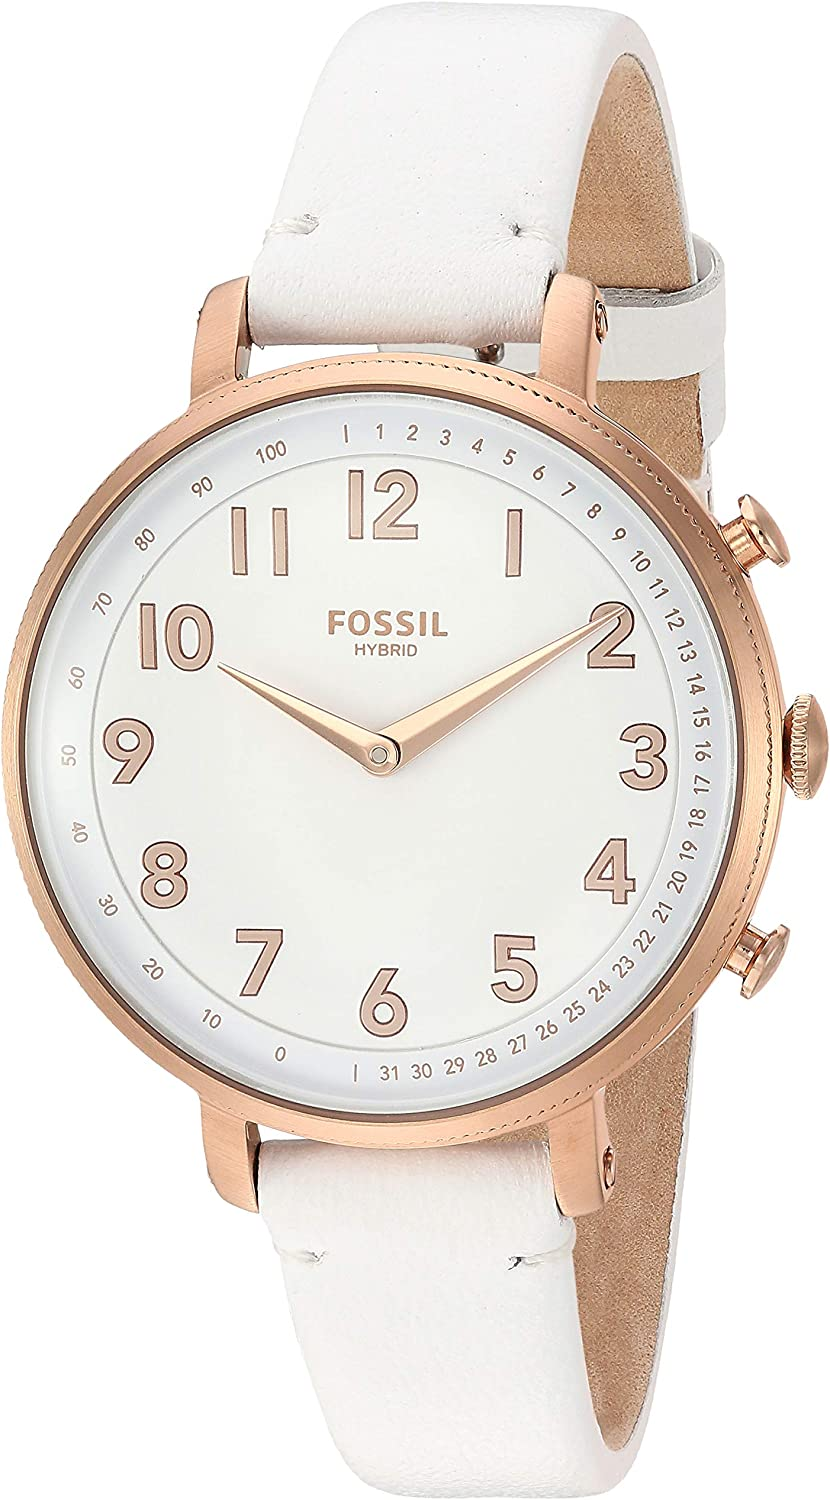 Fossil Womens Stainless Steel Hybrid Watch with Leather Strap, White, 14 (Model: FTW5045)